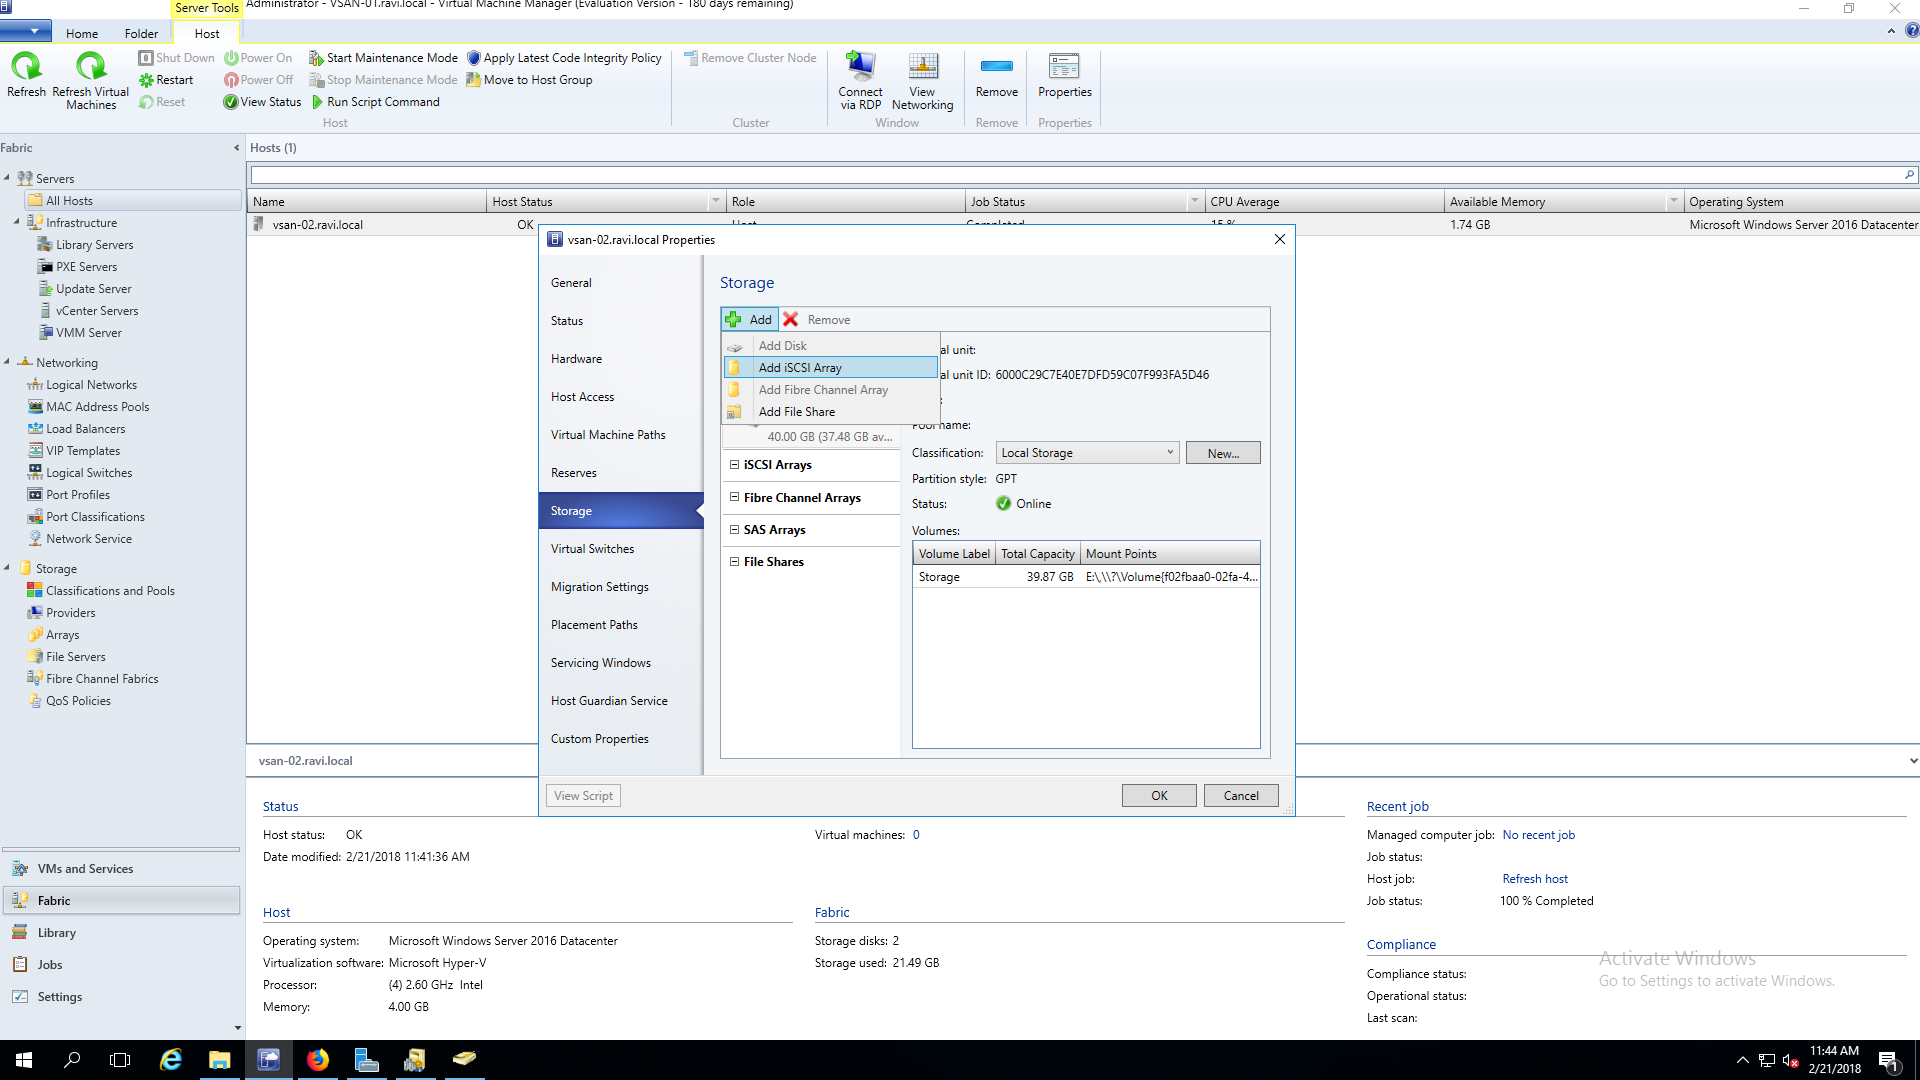 Manage StarWind VSAN storage from SCVMM using SMI-S - Configuration iSCASI Array